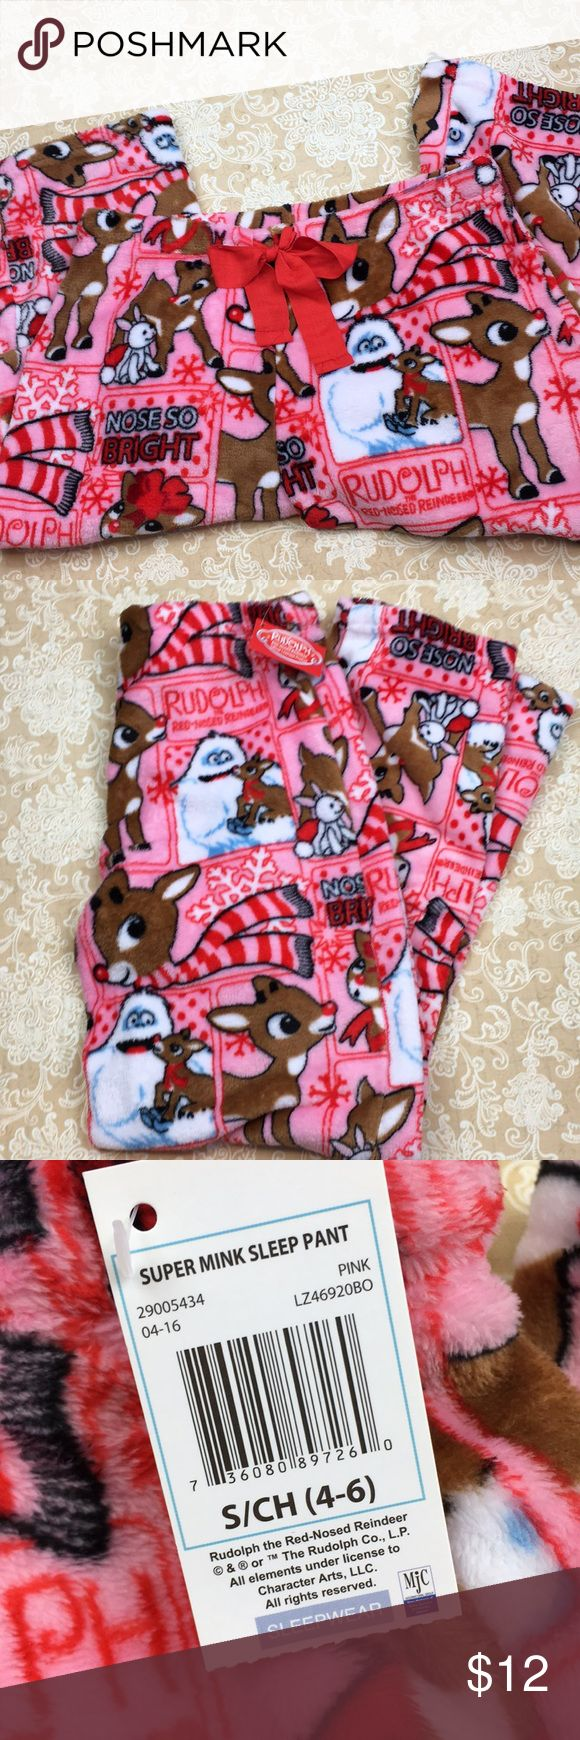 "🆕 Rudolf The Red Nose Reindeer Pajama Pants Super soft rudolf the red nose reindeer pajama pants. 100% polyester.  New with tags. Perfect for gift giving! Size 4/6.  Waist measured flat 15"" and inseam 30"" PT LOC-13 Rudolf Red-Nosed Reindeer Intimates & Sleepwear Pajamas"